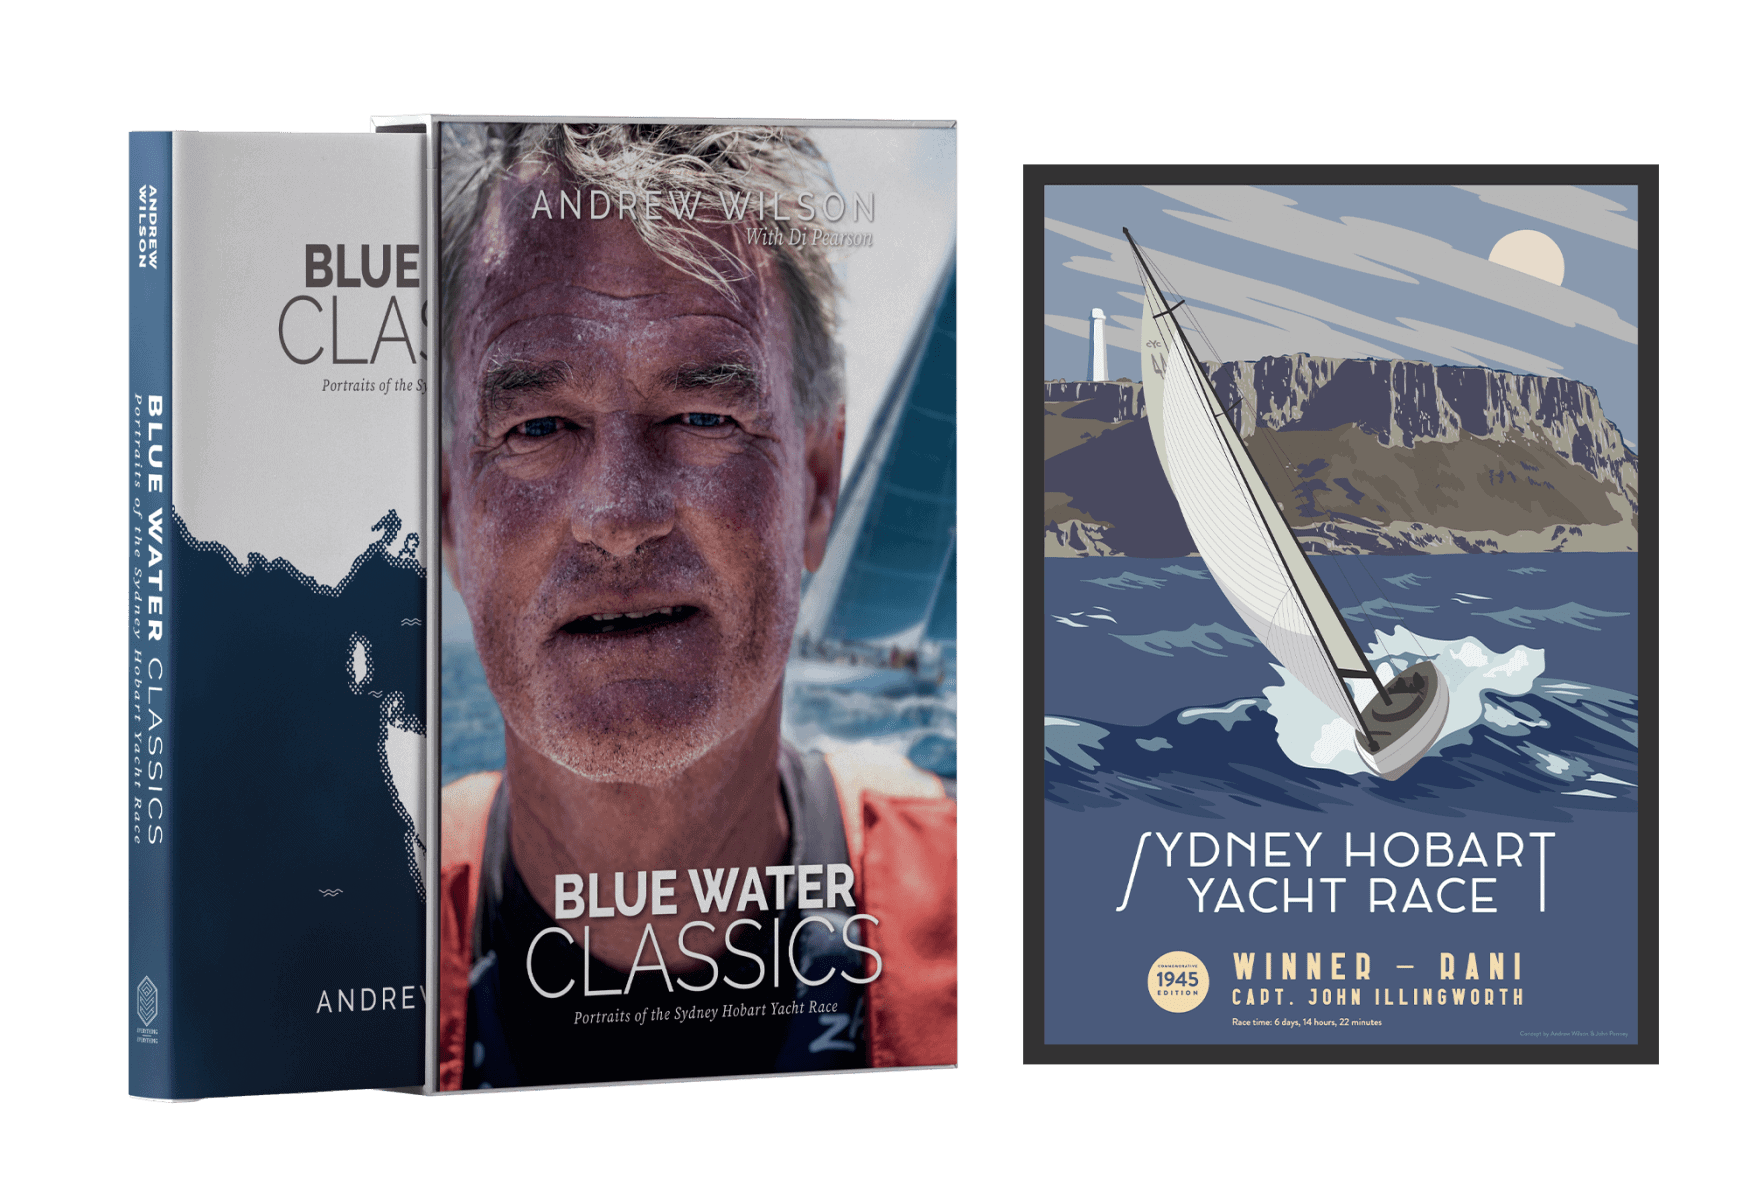 New! Blue Water Classics Signed and Numbered Deluxe Edition